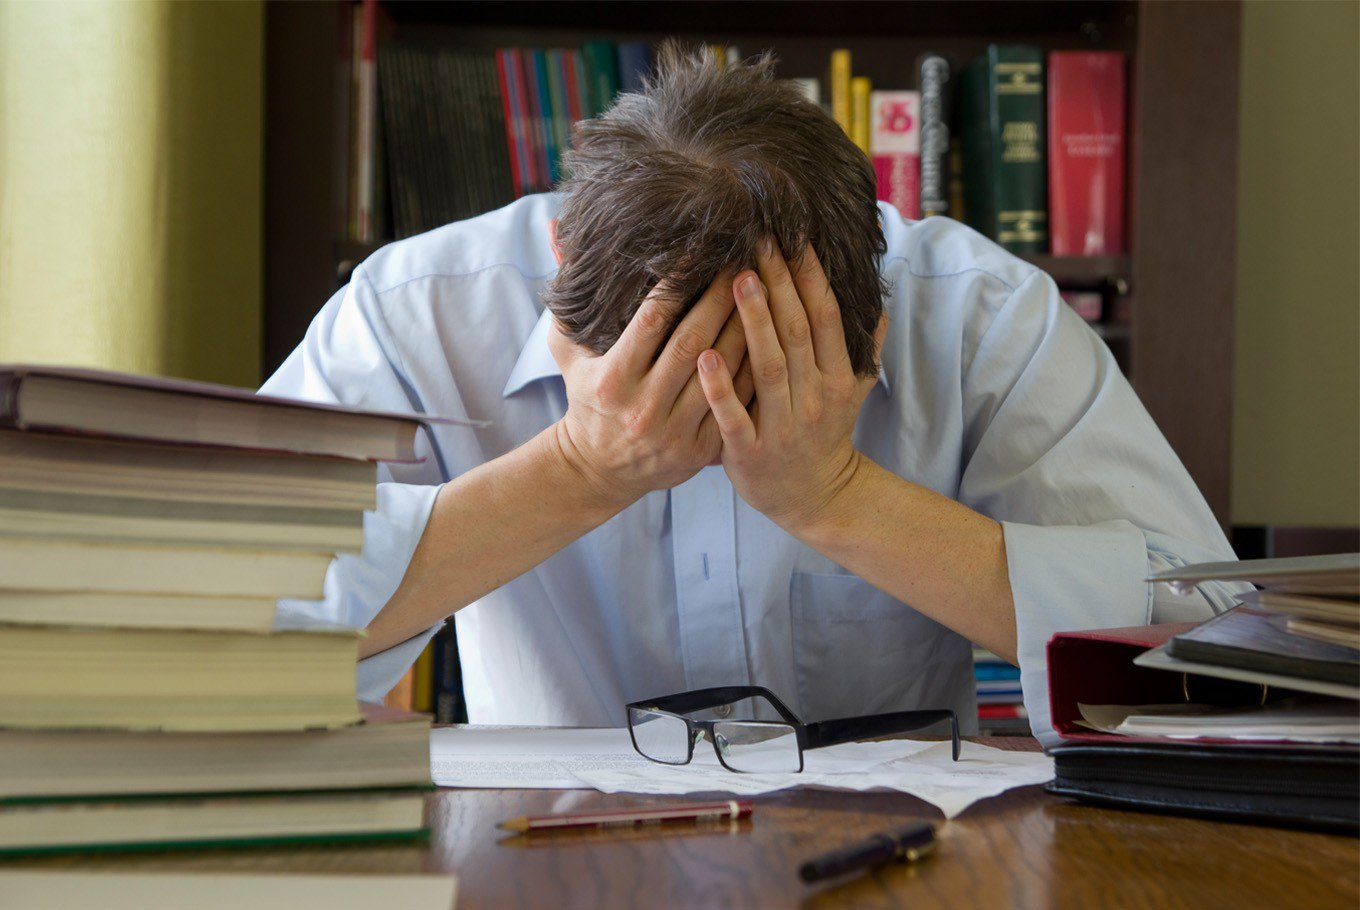 Taking work to the extreme may be a sign of deeper psychological or emotional issues. (Shutterstock/-)